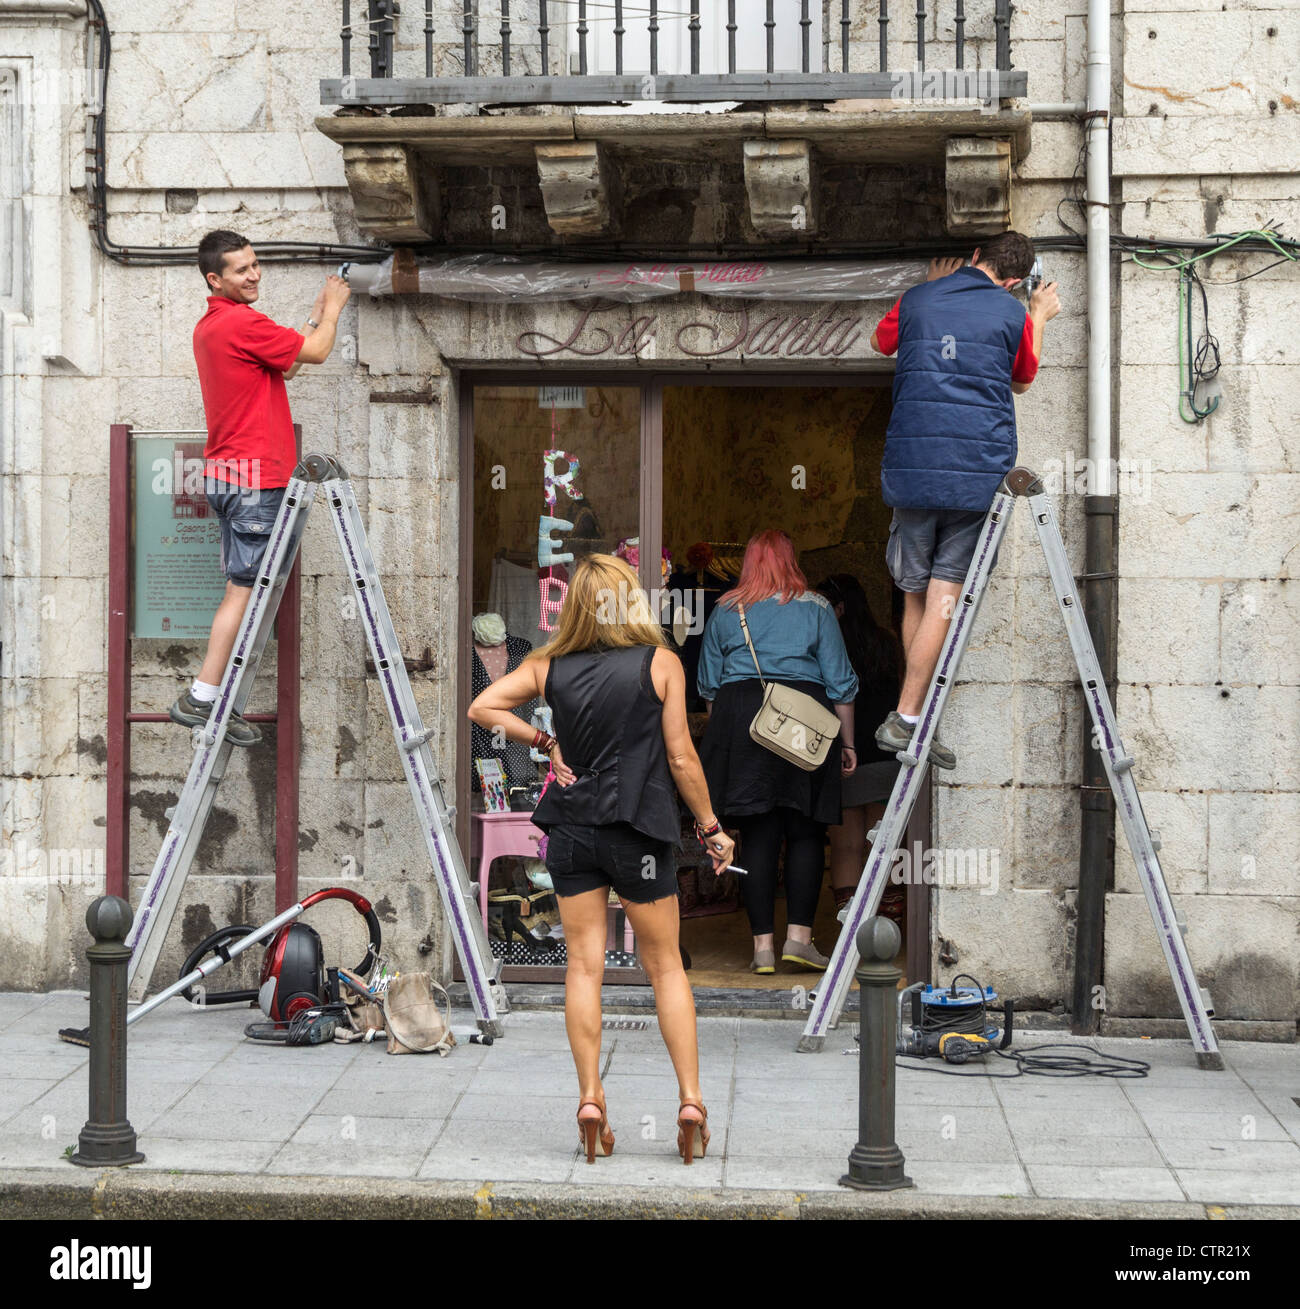 w in high heels smoking a cigarette watching men work outside stock photo w in high heels smoking a cigarette watching men work outside shop in spain